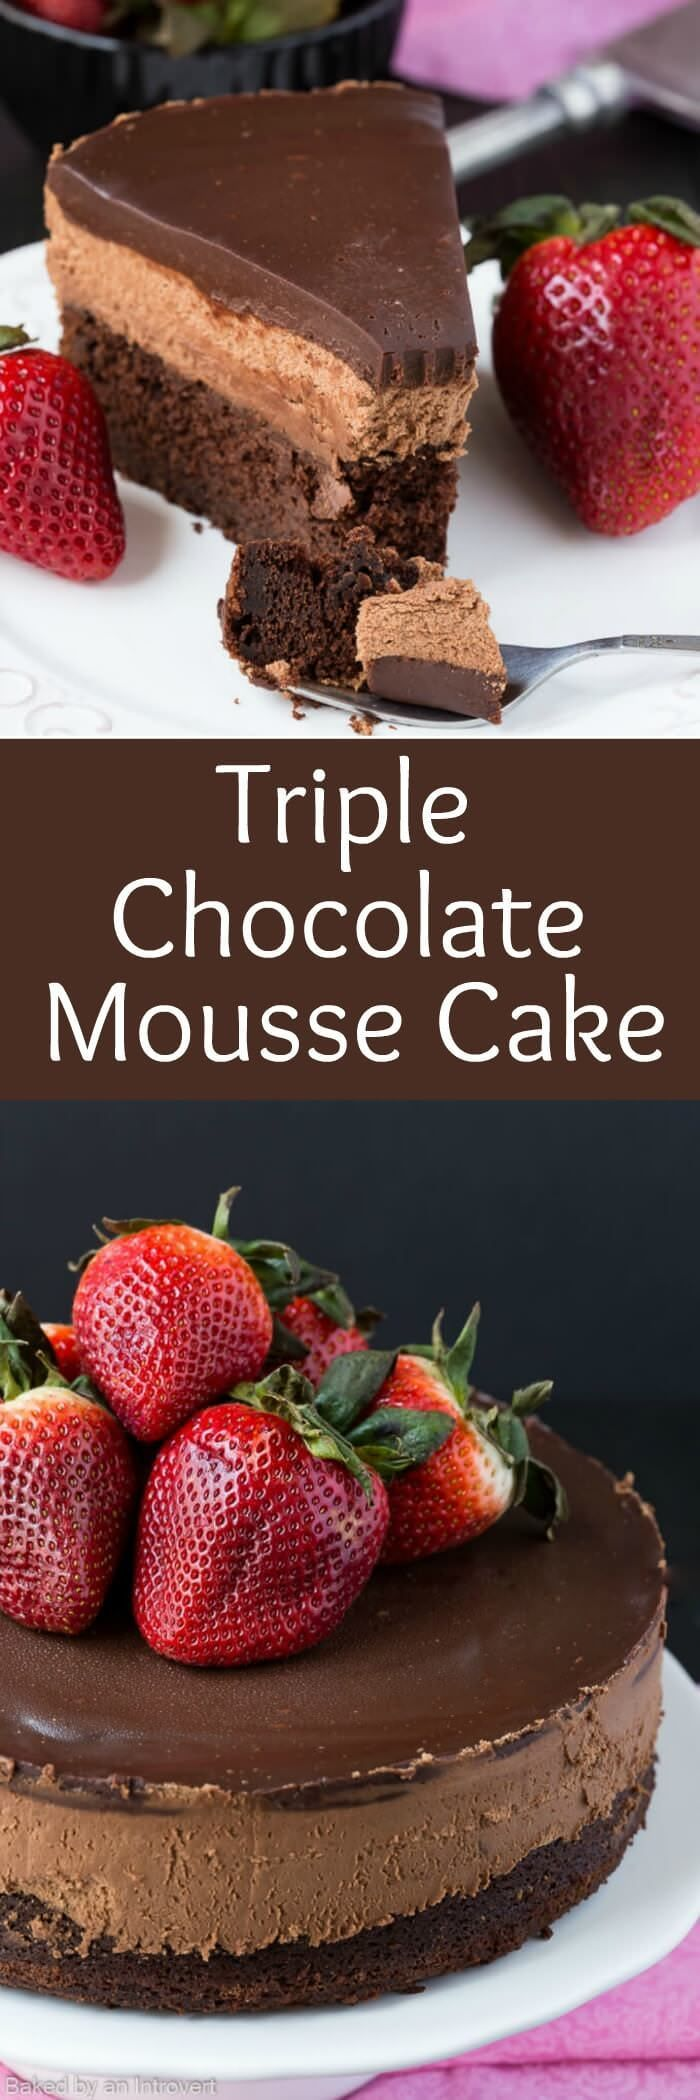 Triple chocolate Mousse Cake is the perfect light dessert recipe. It's made with a chocolate cake base, cool creamy mousse filling, and topped with rich dark chocolate ganache. Serve the cake with fresh berries for an extra special treat that's perfect fo